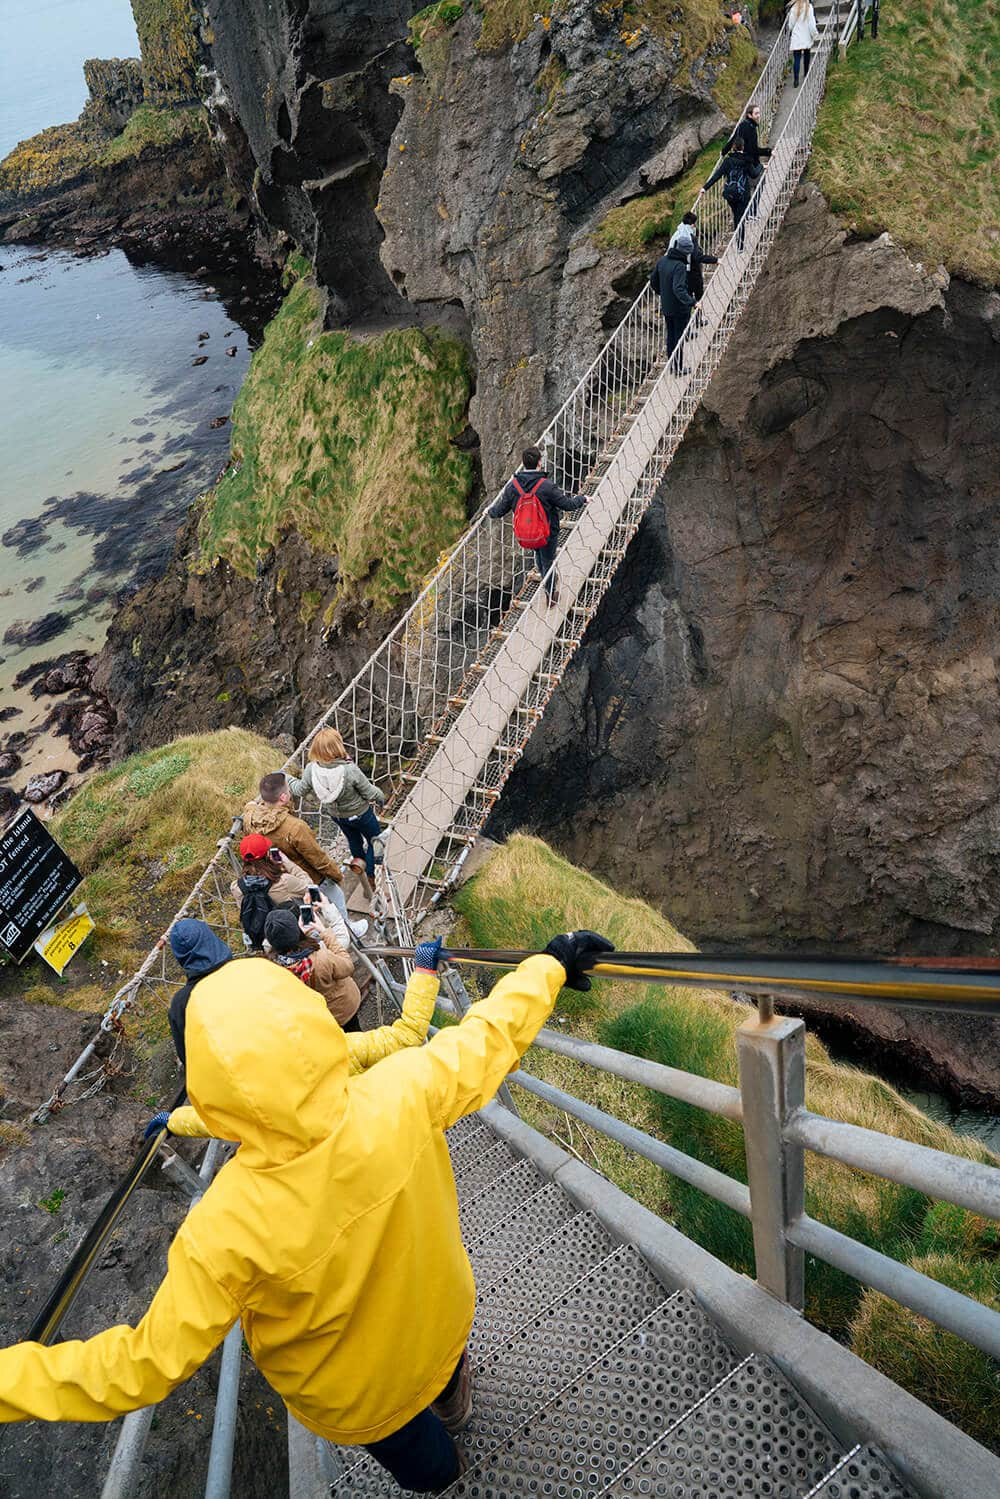 The Best Places to Visit in Ireland Carrickarede Rope Bridge